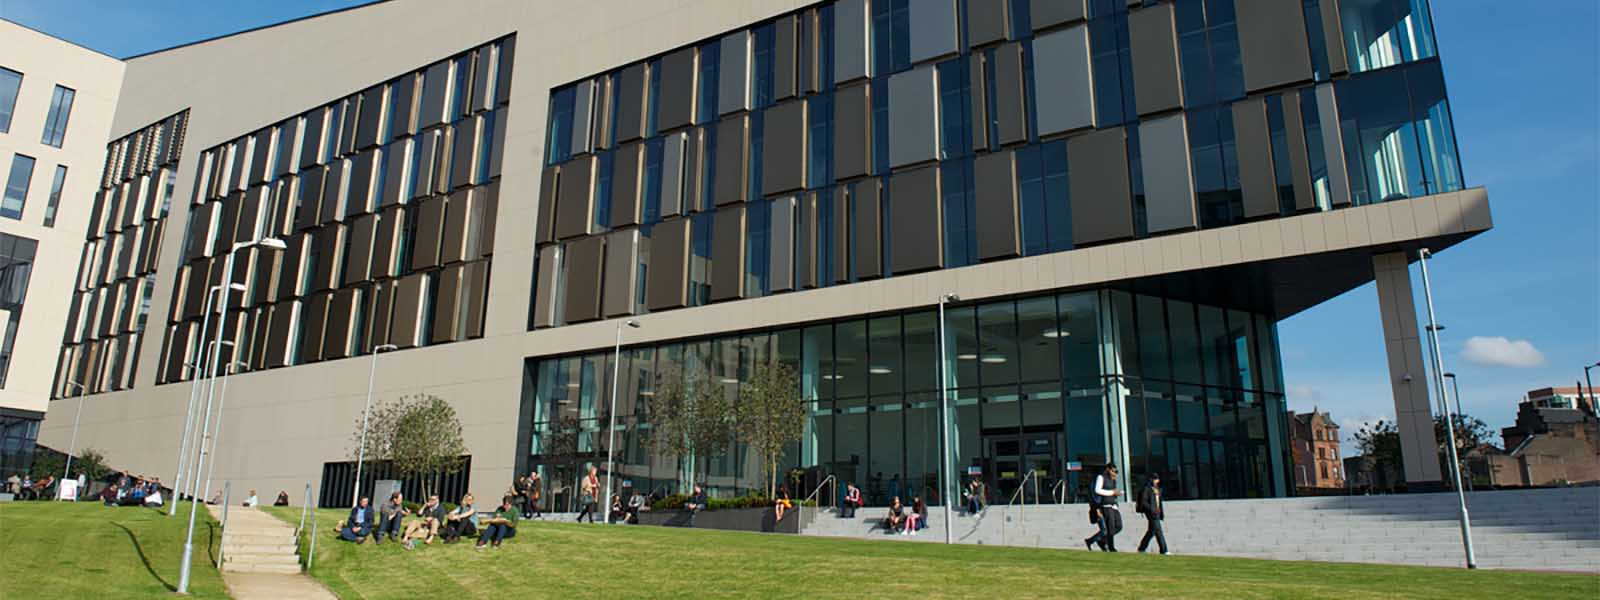 Exterior of the Technology & Innovation Centre